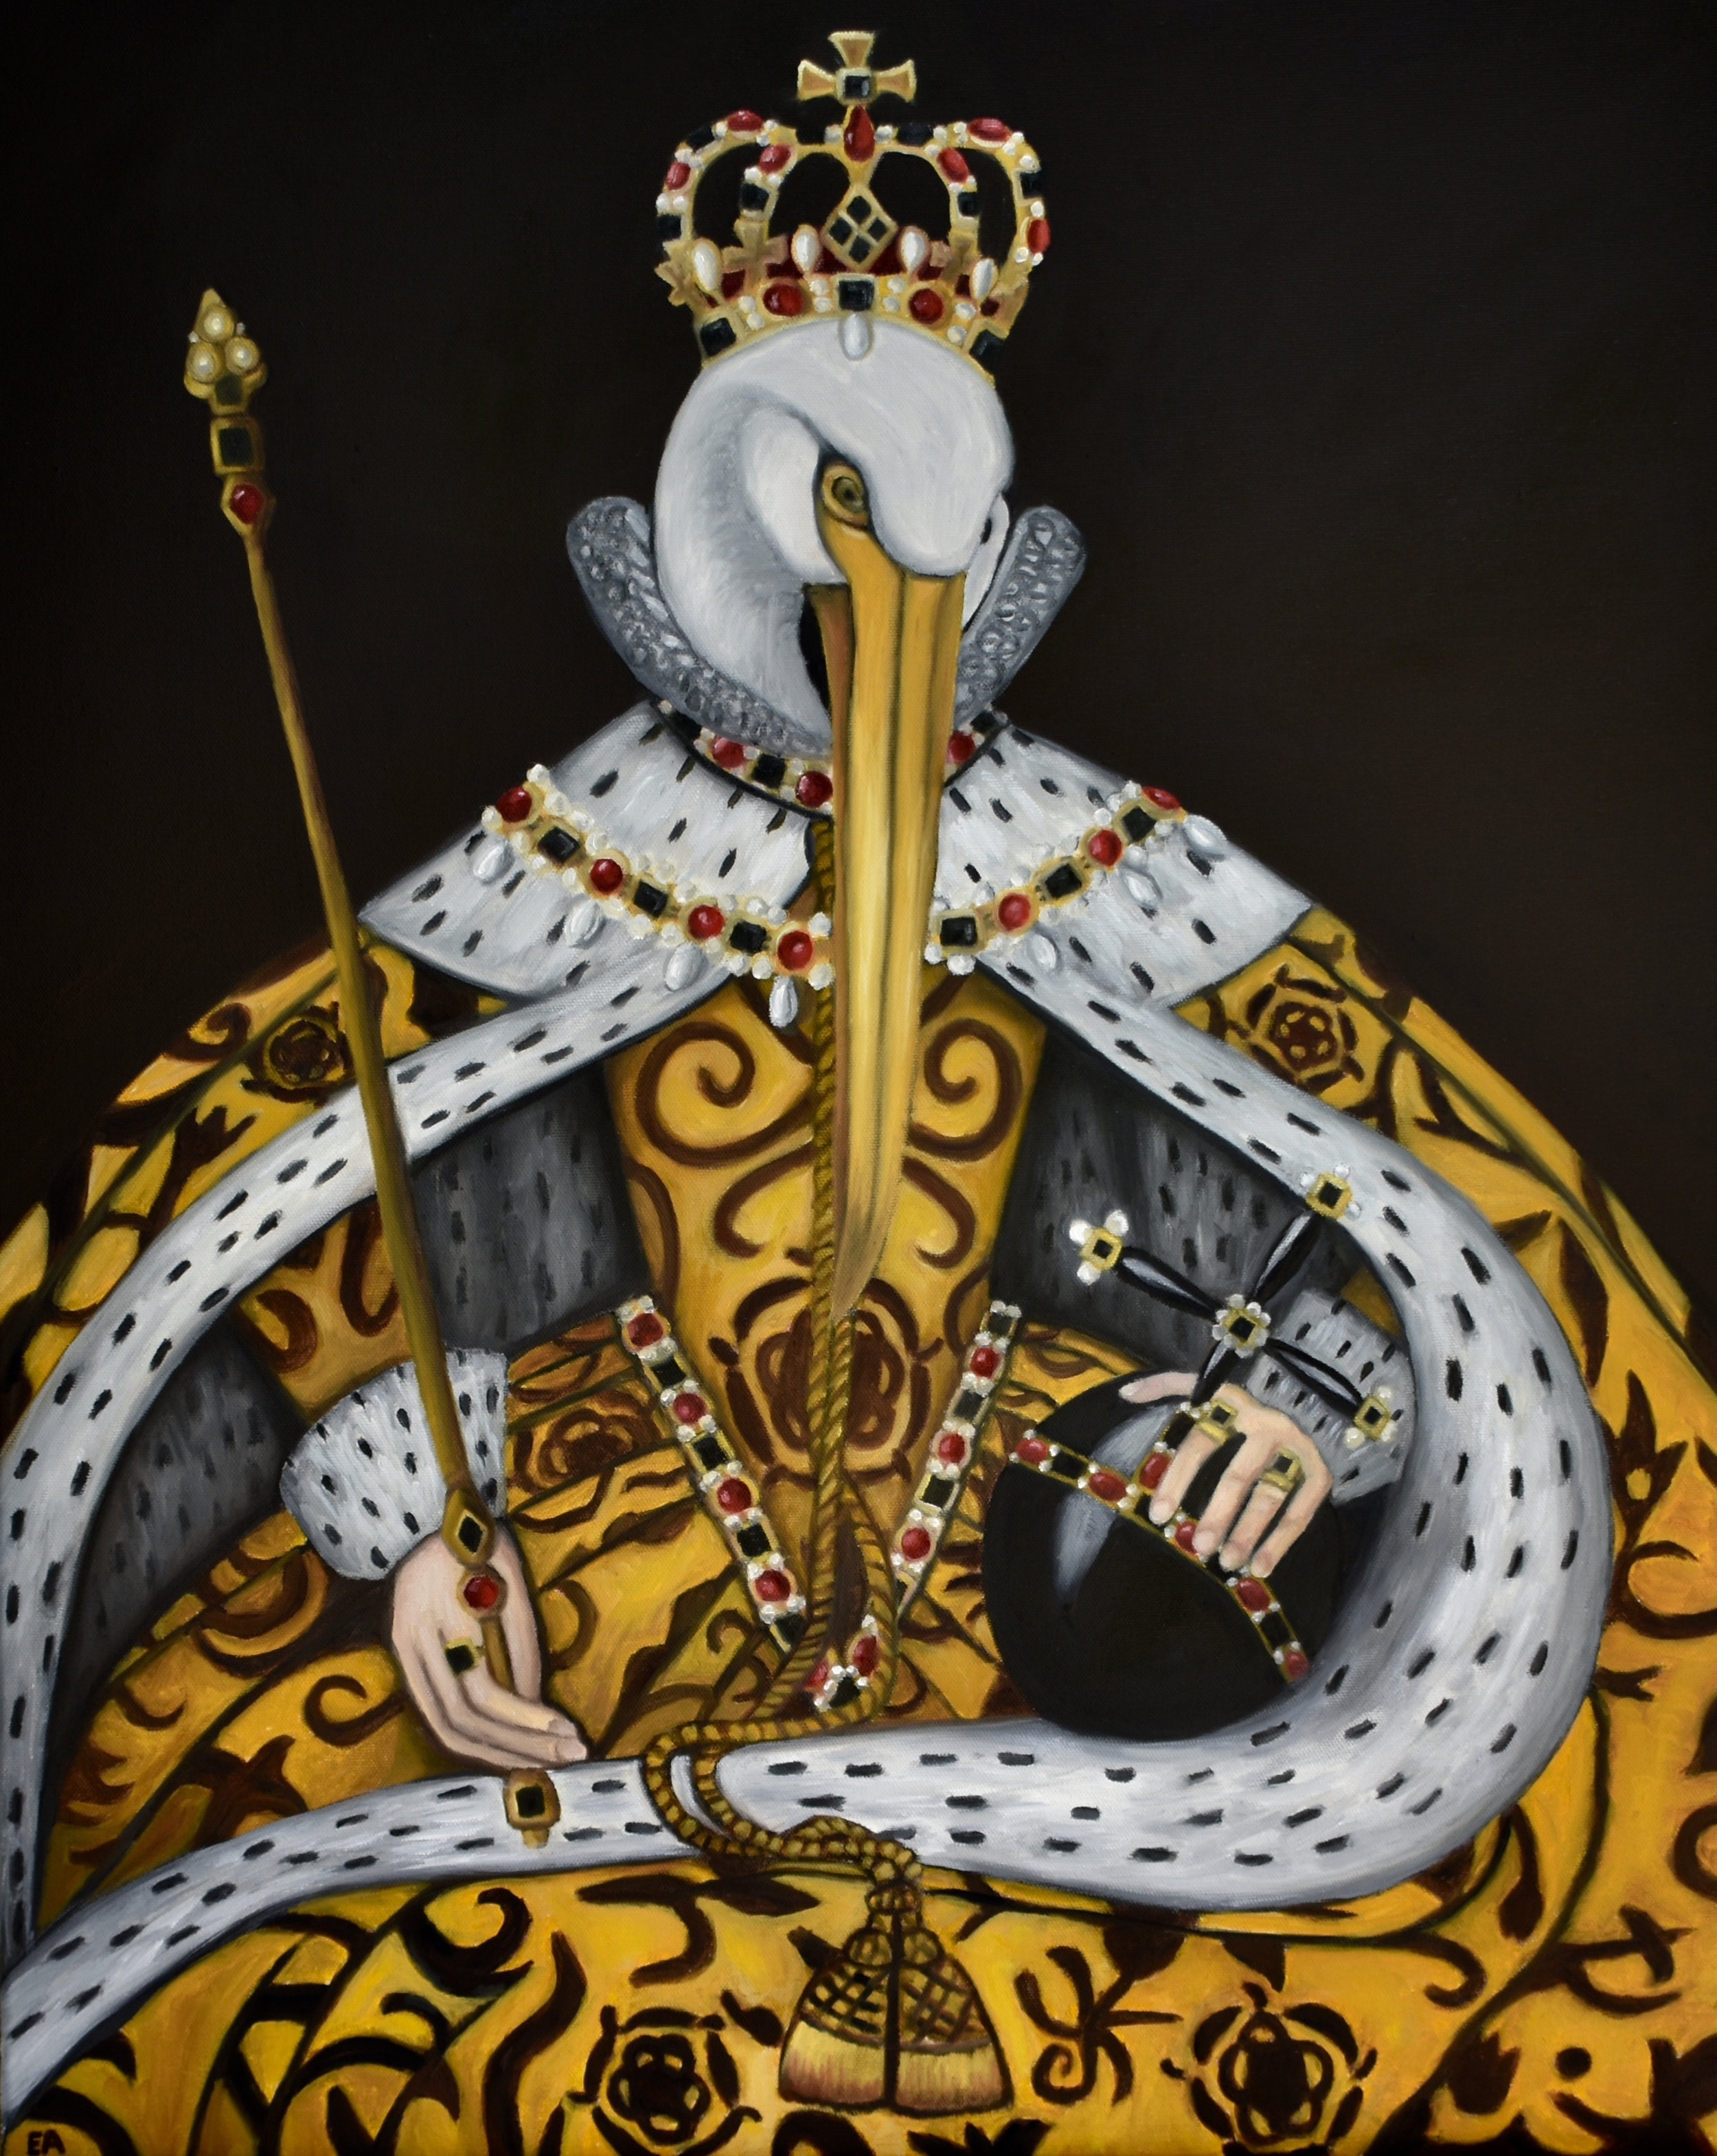 """""""The Queen of Sacrifice"""" 24x30 Oil on Canvas. (Originally created for the """"Birds of War"""" series.  In her portraits Elizabeth I of England (1533-1603) wears all the trappings of royalty--but these decorations are more than just for show. Every stitch and jewel is symbolic. Elizabethan propoganda. Tudor roses decorate the fabric to prove her connection to the Tudors. Pearls symbolize purity. Red, black, white, and gold, prove her wealth and status. Crosses show her connection to God (she was convinced she had a direct line). And, often, a pelican appears on or around her person.  The pelican symbolizes her selfless love for her people, a mother's love, because, according to legend, a female pelican would pluck her own breast to feed her dying young with her own blood. The pelican was also a symbol, in the Middle Ages, of Jesus' crucifixion, the ultimate sacrifice, and of the Eucharist. The bird to represent the queen, then, was an easy choice.  However, the choice of the Queen to represent England was not always so easy. Elizabeth's mother, Anne Boleyn, was famously beheaded and her marriage to King Henry VIII annulled. Elizabeth was the last of Henry's line remaining after her elder sister Mary Tudor died. But many proclaimed that, because of Elizabeth's illegitimacy that her distant cousin Mary Stuart was the true heir to the throne.  In the midst of all these legitimacy claims there was the larger problem of religion. Elizabeth was a Protestant and Mary a Catholic. Religious wars were boiling all over Europe and the ruler of the British Empire was a big prize.  In the end, as you may already know, Elizabeth won the prize. Ultimately this win was due to her council of advisors that ran the Elizabethan propaganda machine. Every downfall they turned into a win. The childless illegitimate bastard transformed into a virgin queen chosen by God. Voila. The moral of this story is: always keep good council.  Painting inspired by """"Queen Elizabeth I in Coronation Robes"""" Unkno"""